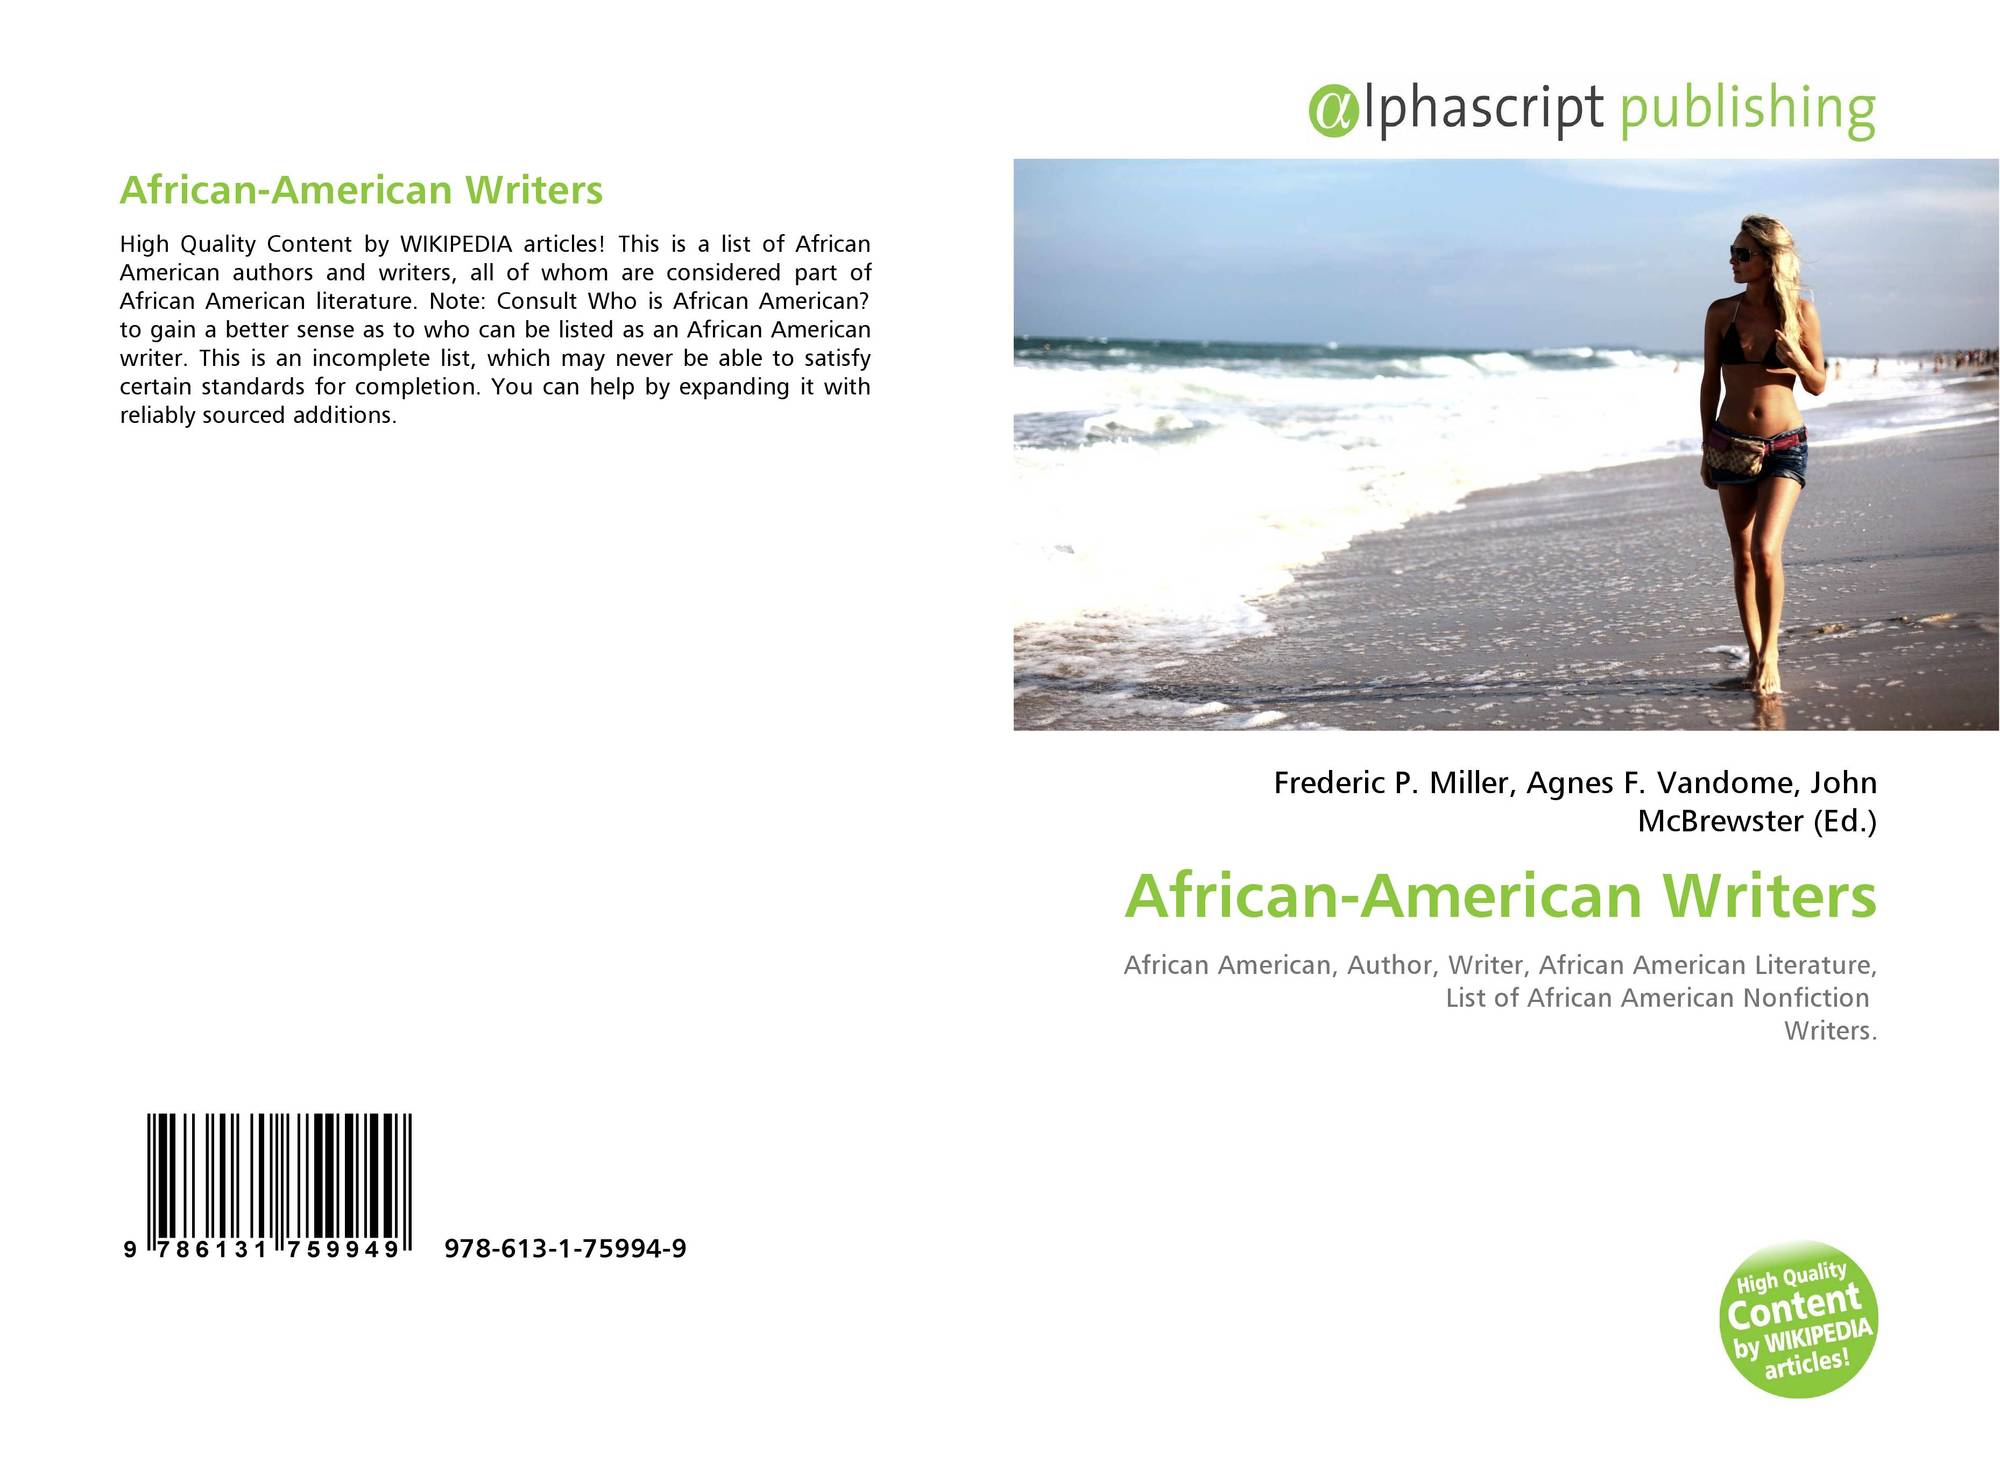 African-American Writers, 978-613-1-75994-9, 6131759944